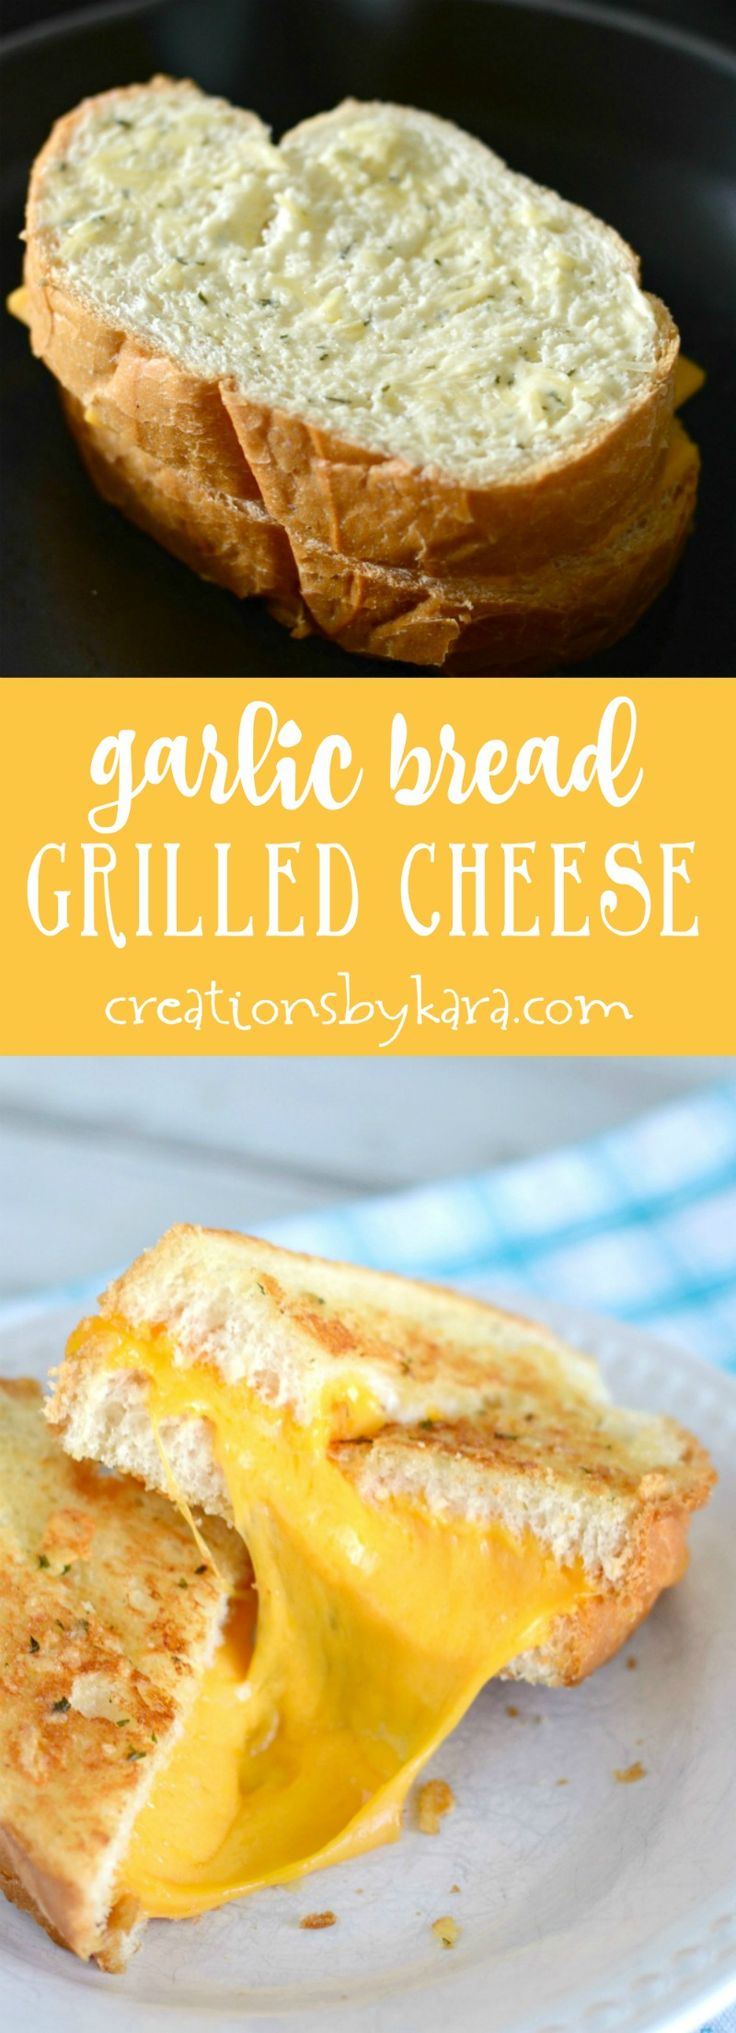 Give these garlic bread grilled cheese sandwiches a try. They are packed with flavor! A tasty update on a classic sandwich! via creationsbykara.com